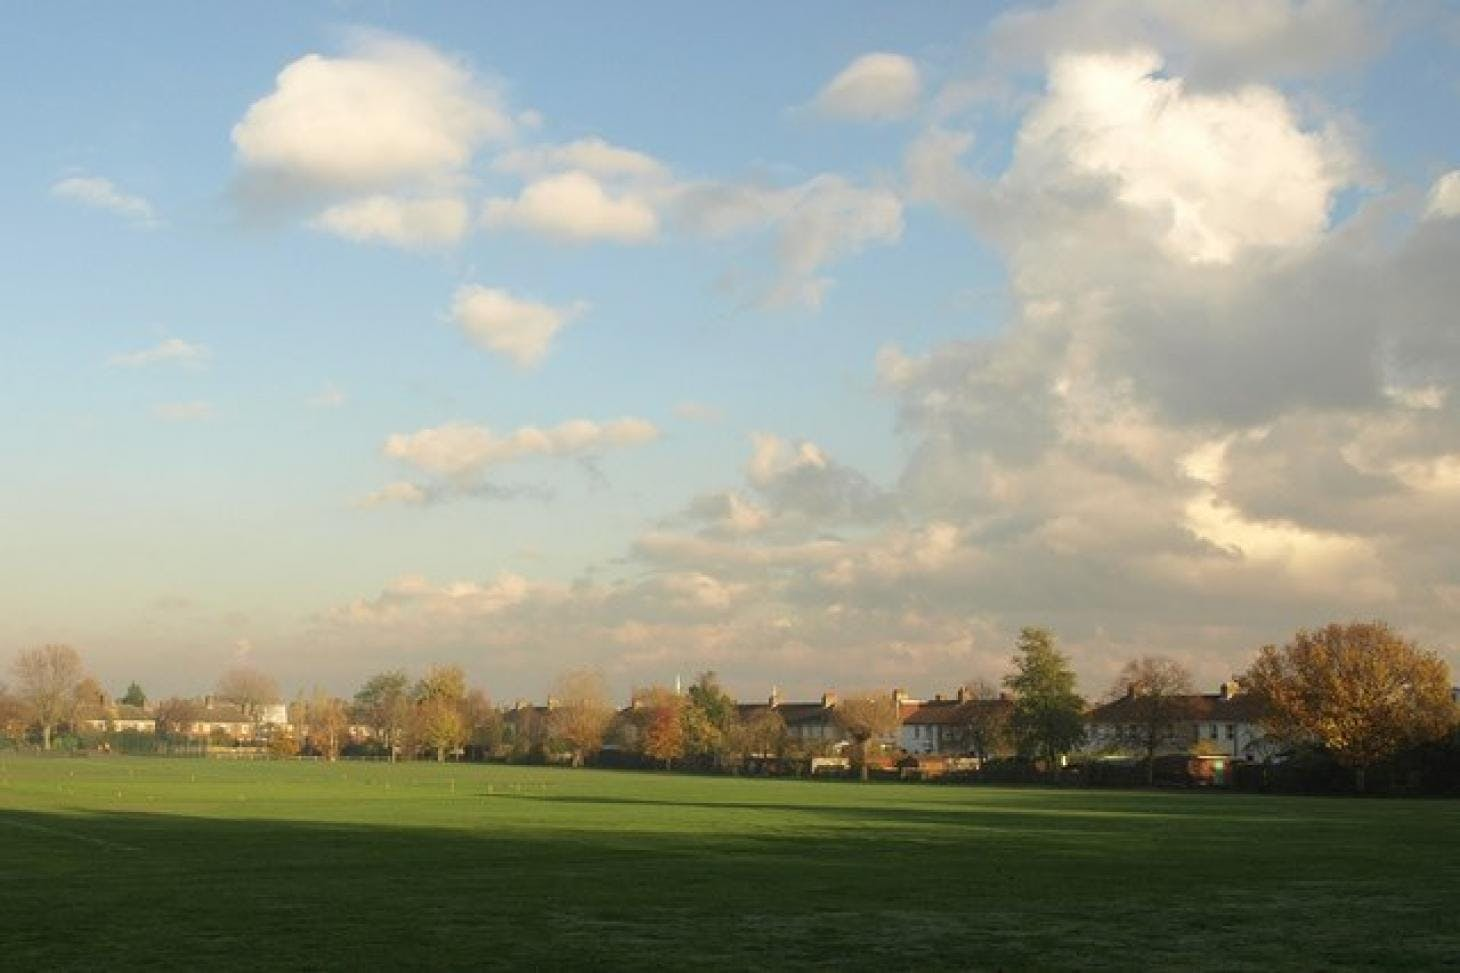 Joseph Hood Recreation Ground Full size | Grass cricket facilities